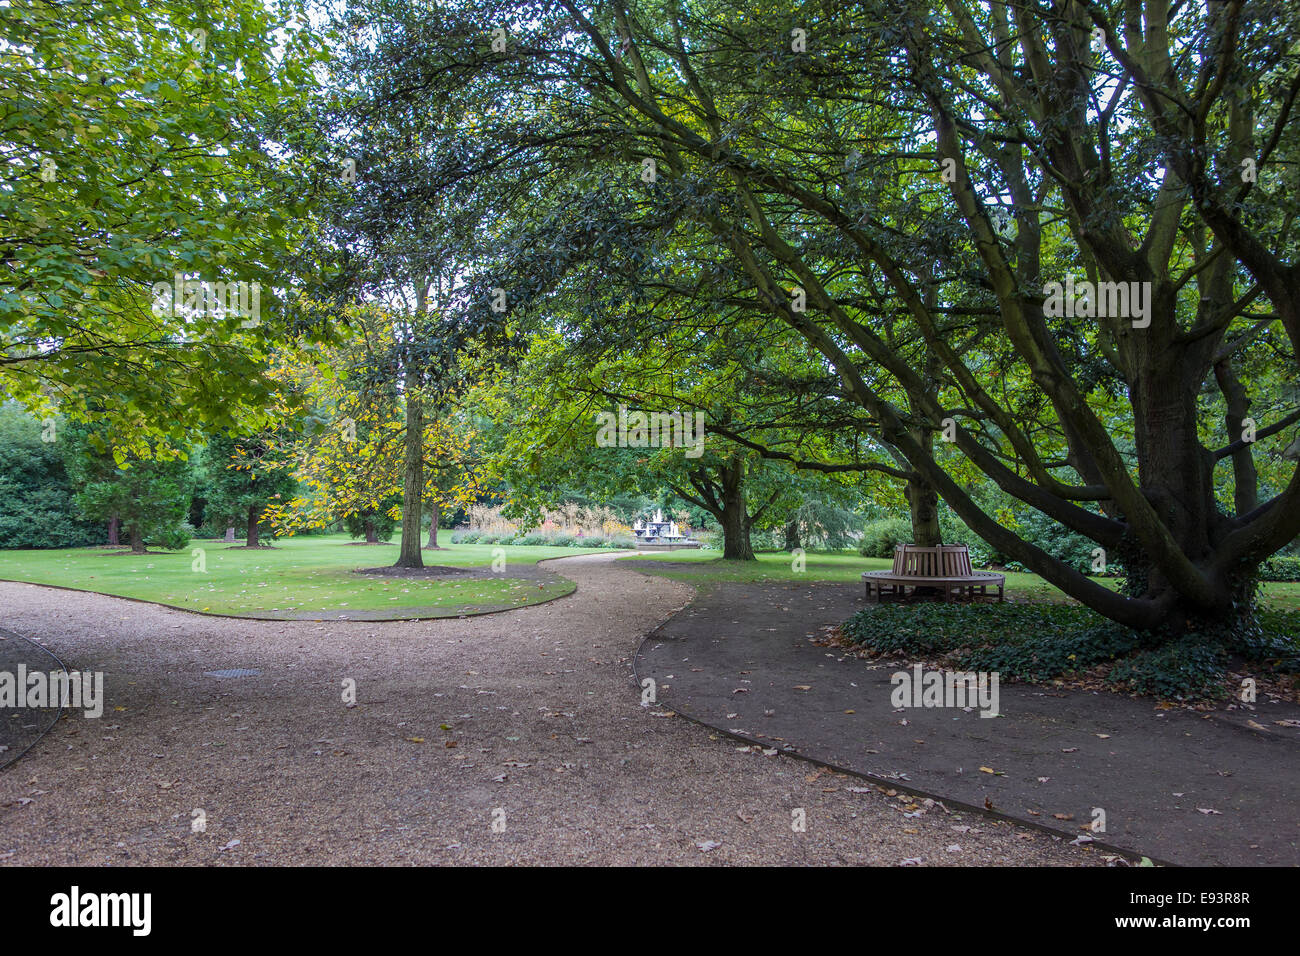 Personable Cambridge Botanical Gardens In The Autumn Stock Photo Royalty  With Excellent Cambridge Botanical Gardens In The Autumn With Archaic Marble Arch To Covent Garden Also Wooden Garden Arches For Sale In Addition Viet Garden And Stubbings Garden Centre As Well As Stone Garden Furniture Uk Additionally Aluminium Garden Furniture From Alamycom With   Excellent Cambridge Botanical Gardens In The Autumn Stock Photo Royalty  With Archaic Cambridge Botanical Gardens In The Autumn And Personable Marble Arch To Covent Garden Also Wooden Garden Arches For Sale In Addition Viet Garden From Alamycom